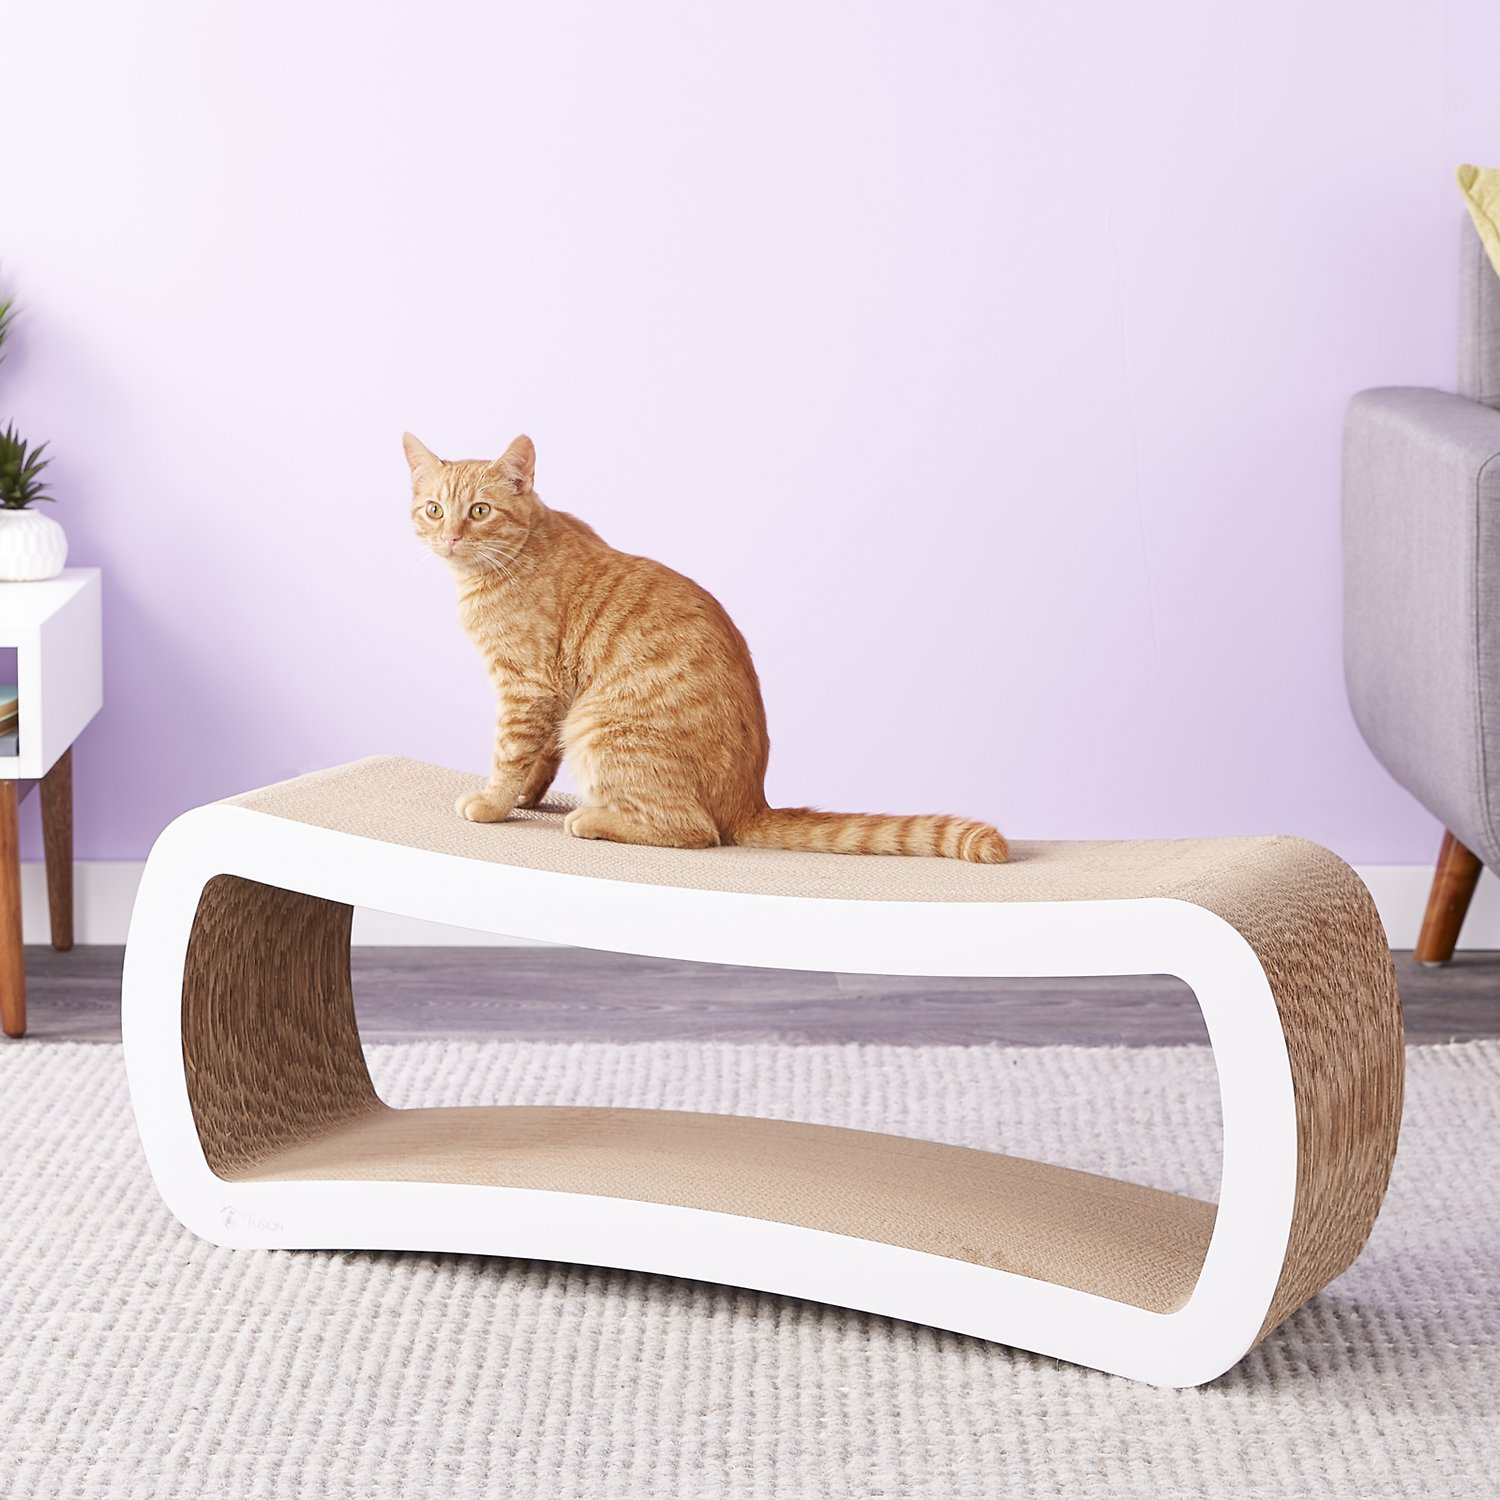 Petfusion Jumbo Cat Scratcher Lounge White Roll Over Image To Zoom In Video